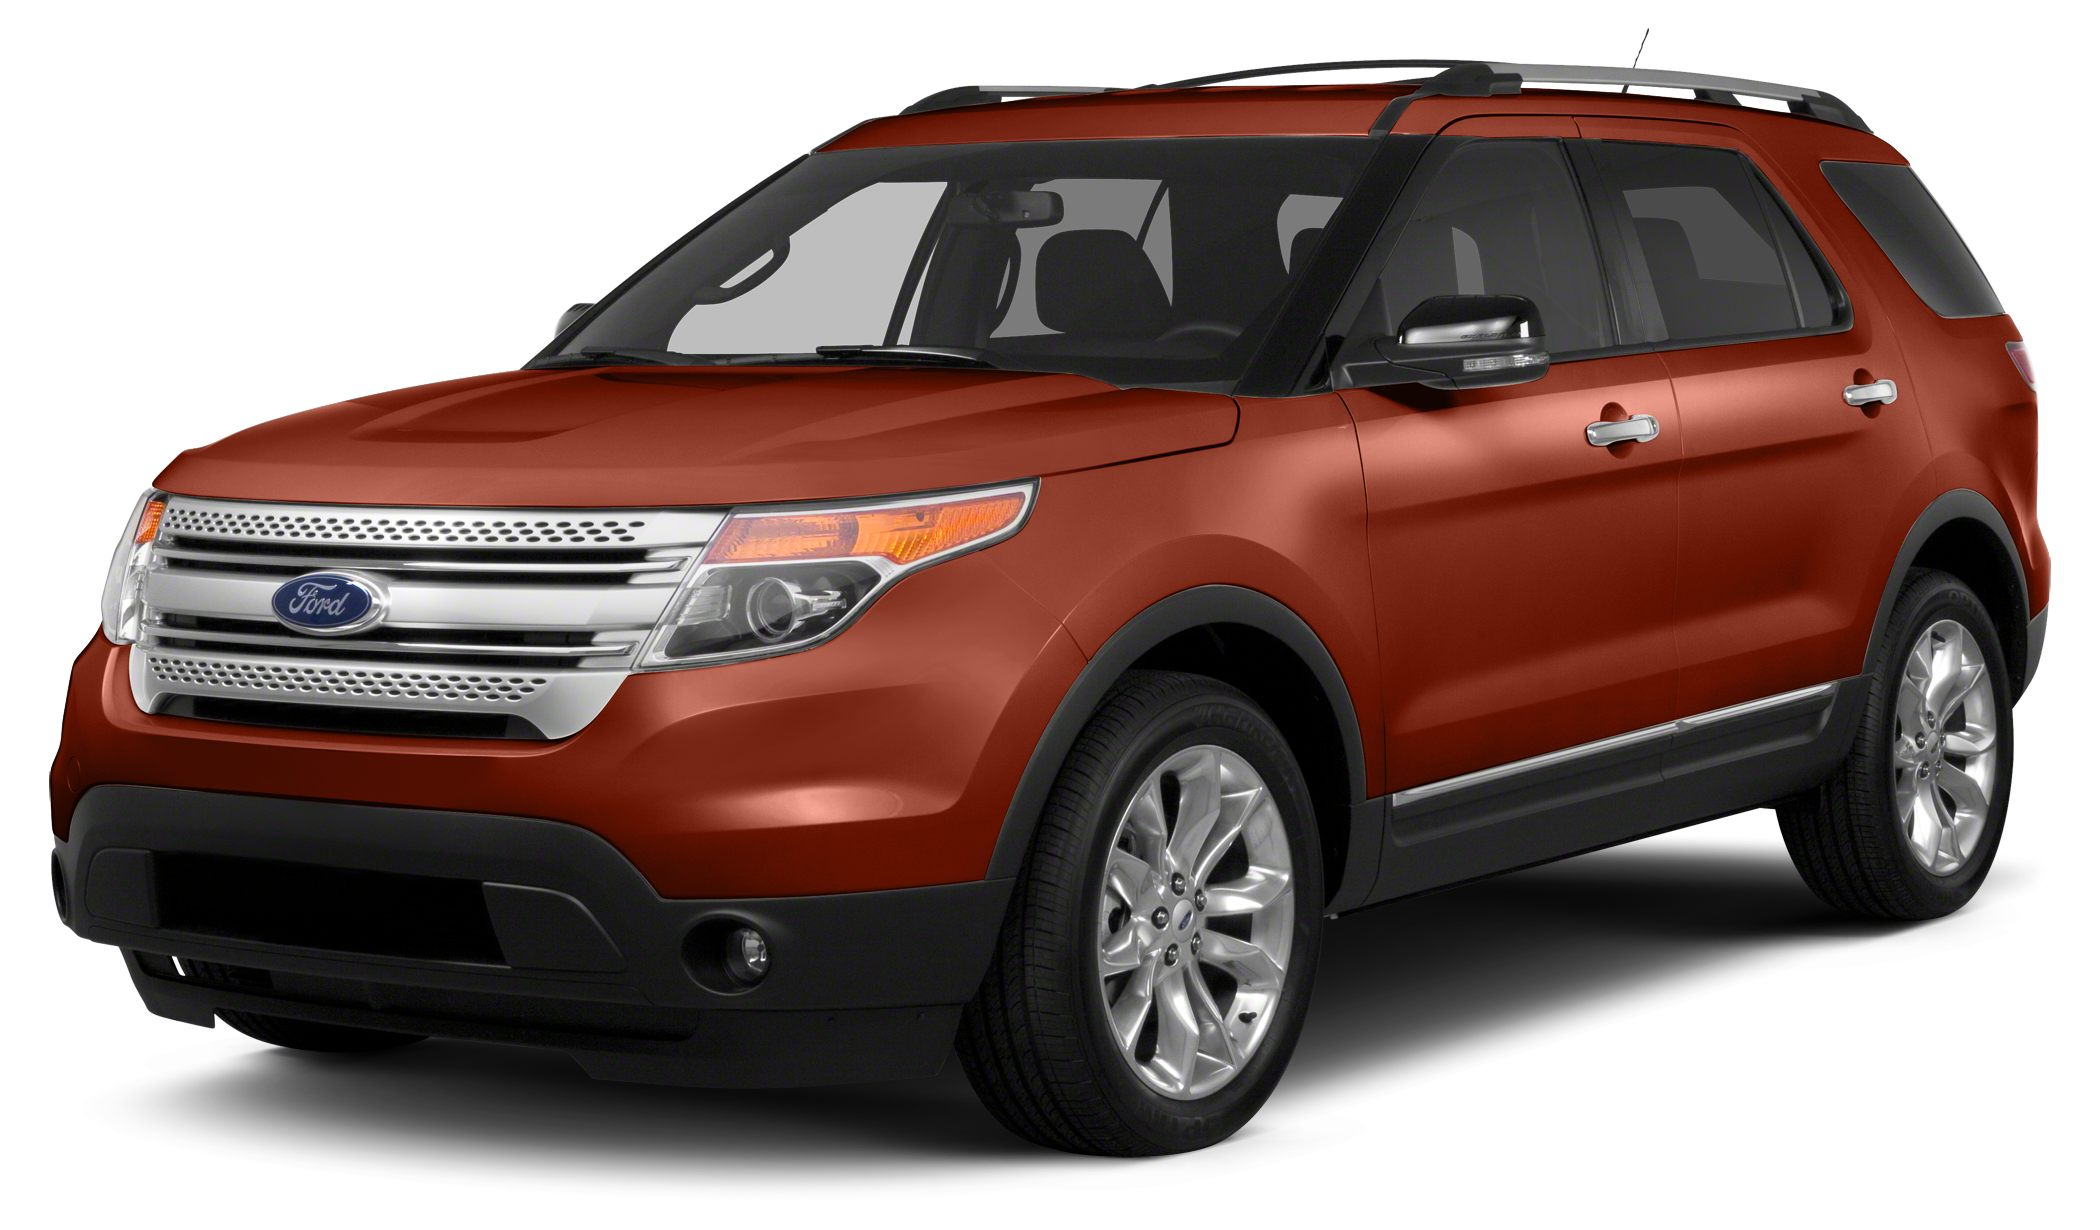 2014 Ford Explorer XLT AWD Dont let the miles fool you STOP Read this Previous owner purchase